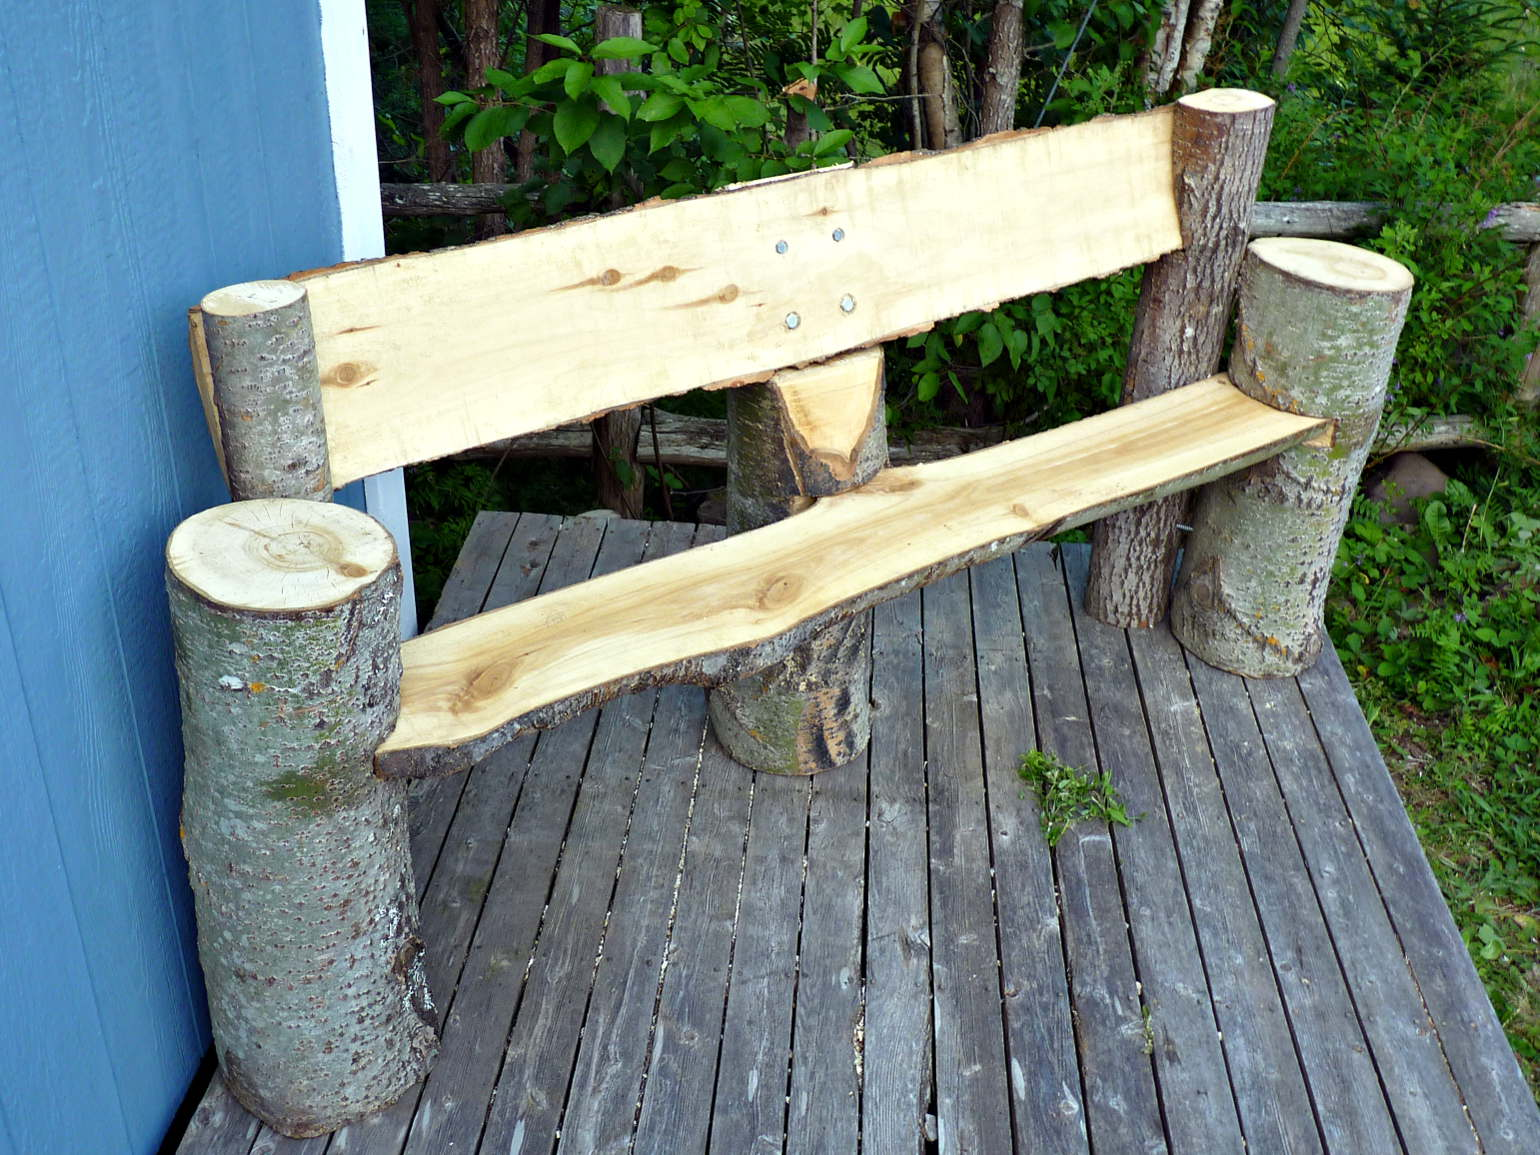 Benches carved with chainsaws!